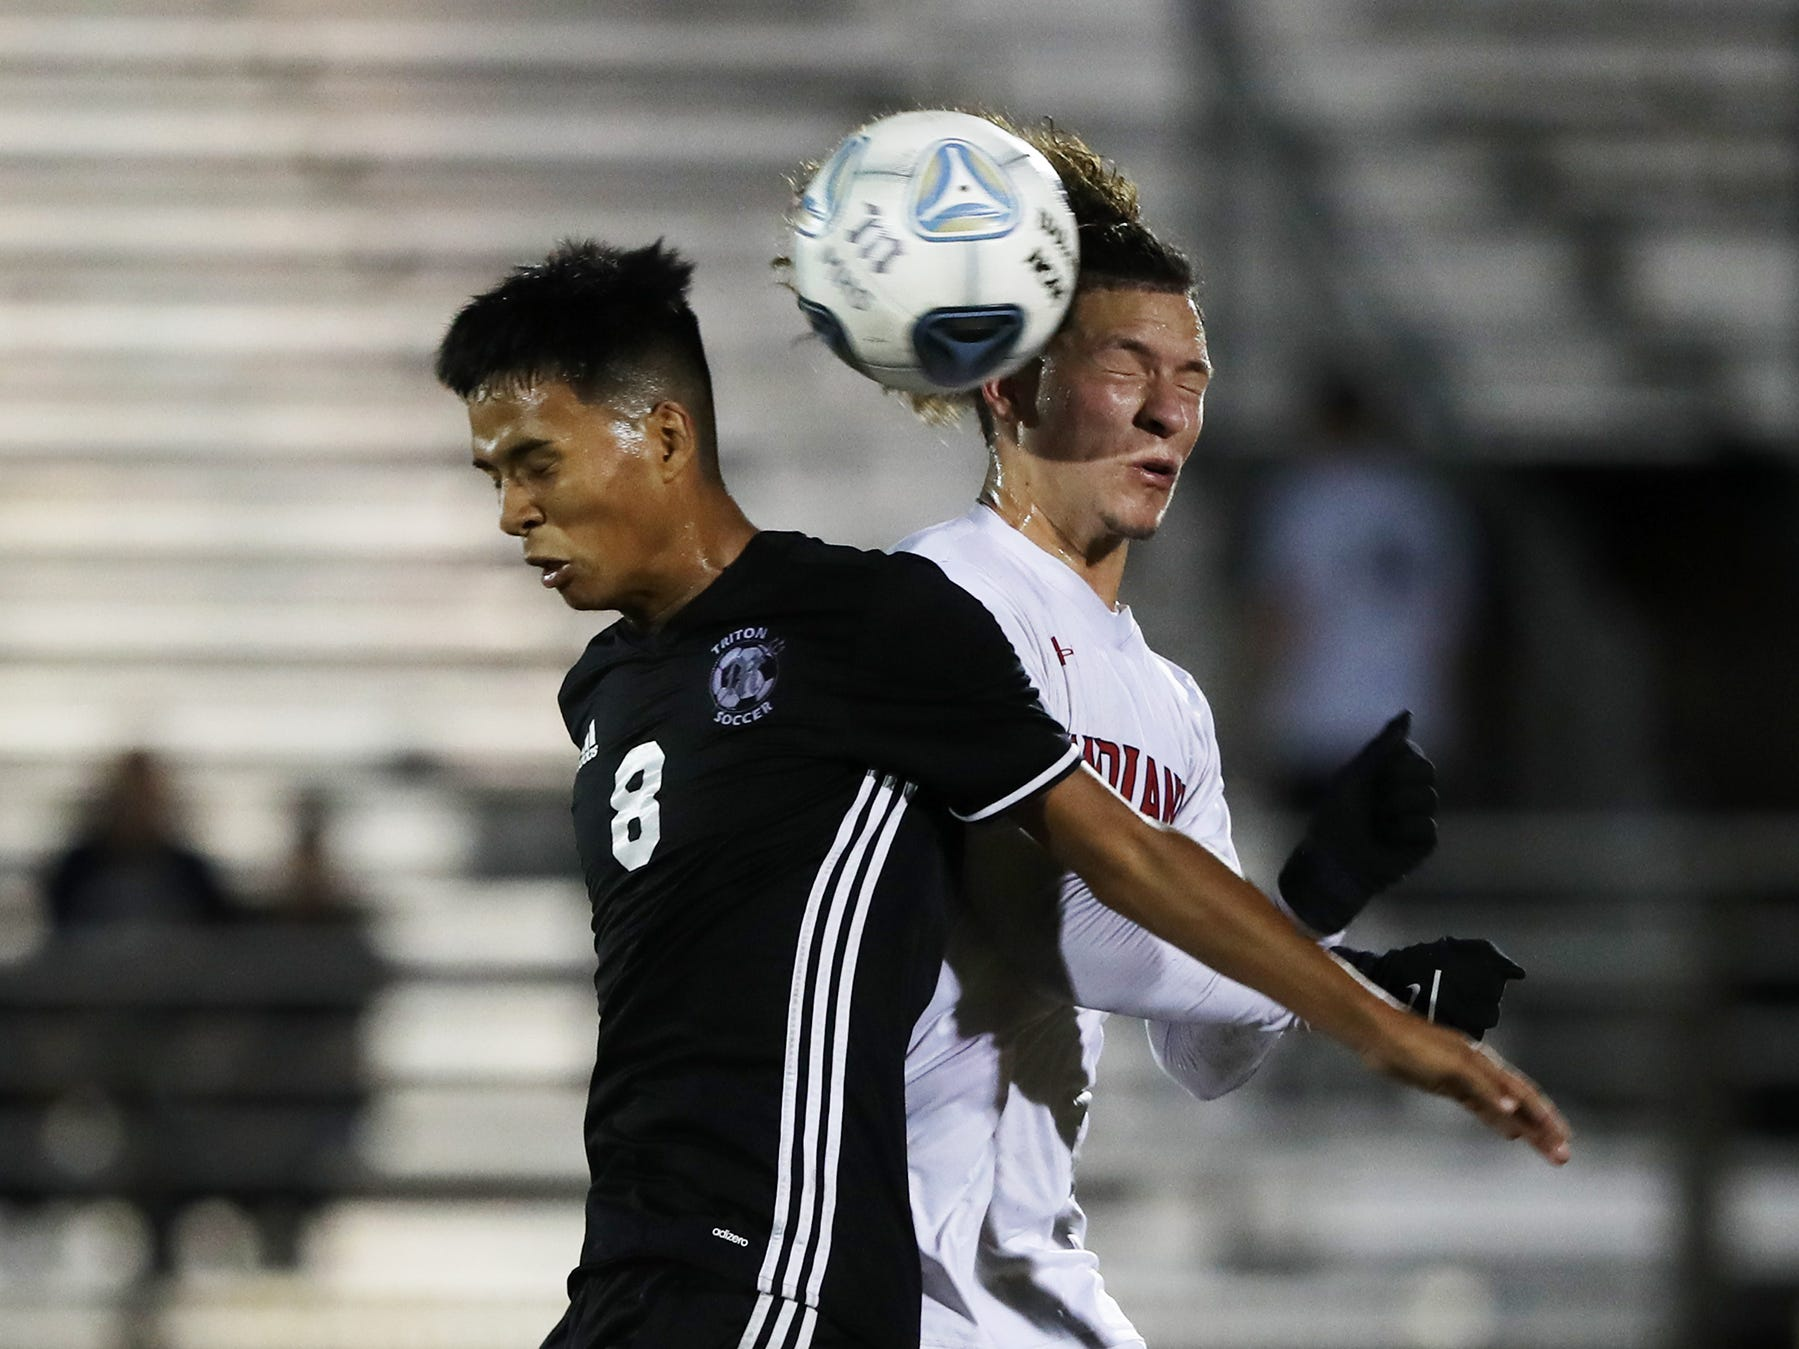 Mariner High School's Alex Franco, left, battles Immokalee's Guadalupe Guzman on Wednesday in the Class 3A regional quarterfinal. Mariner beat Immokalee 2-0.